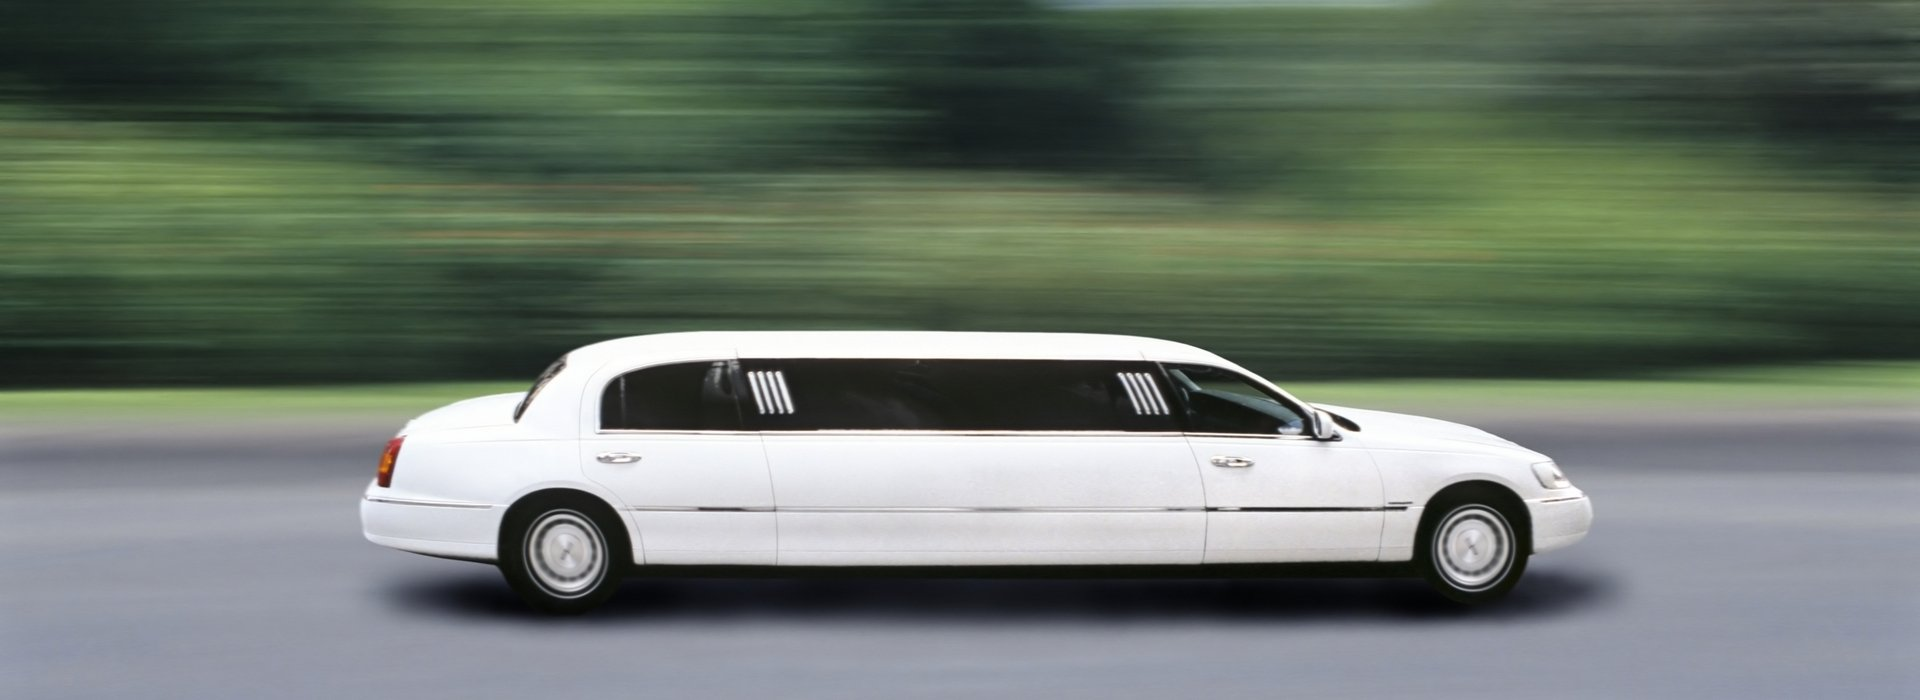 Budapest Wedding limo  Budapest limousine hire for weddings